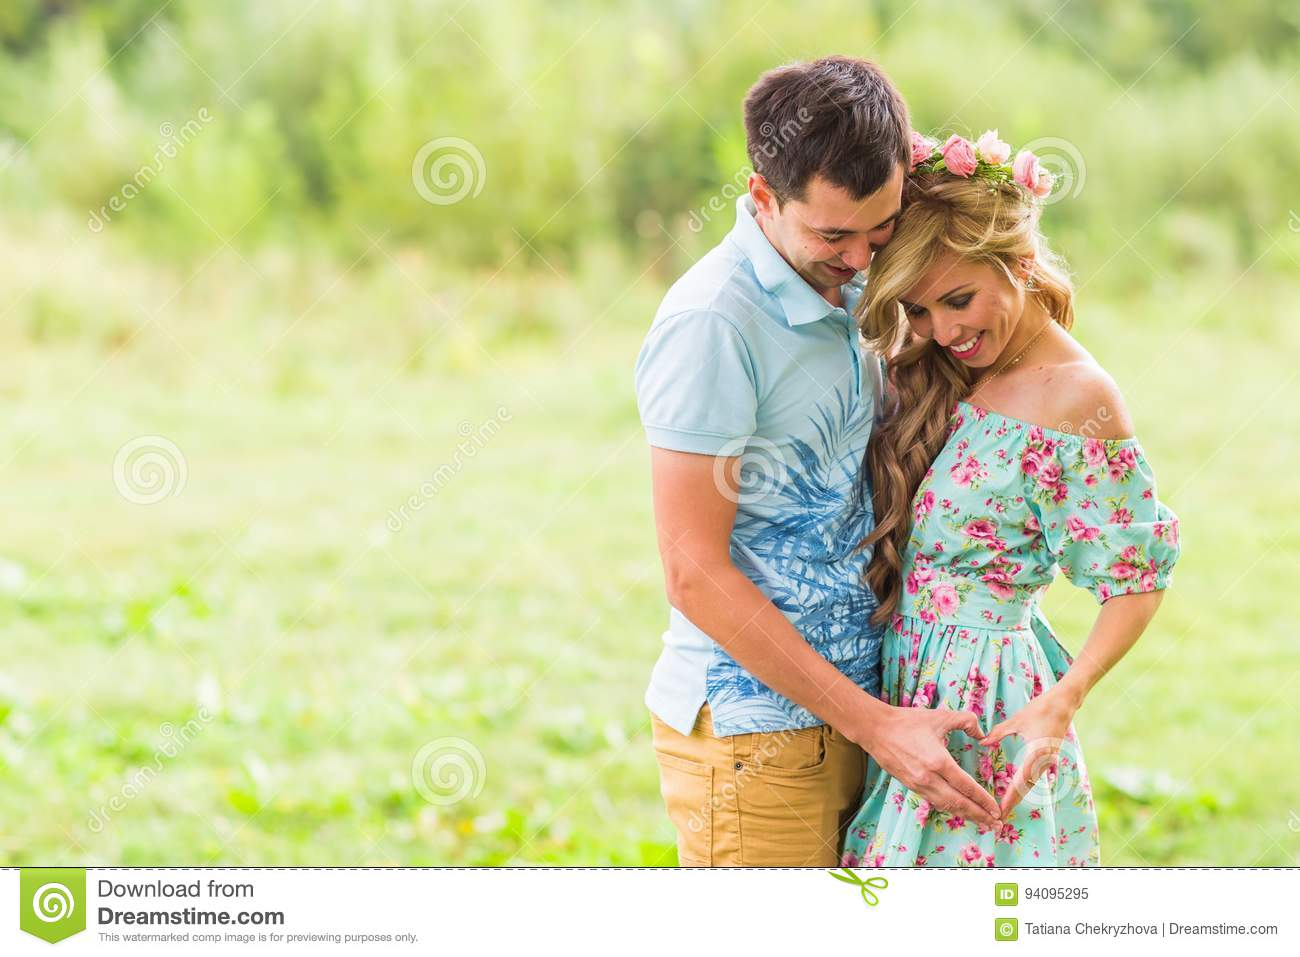 Beautiful young couple is making heart of fingers and smiling in nature